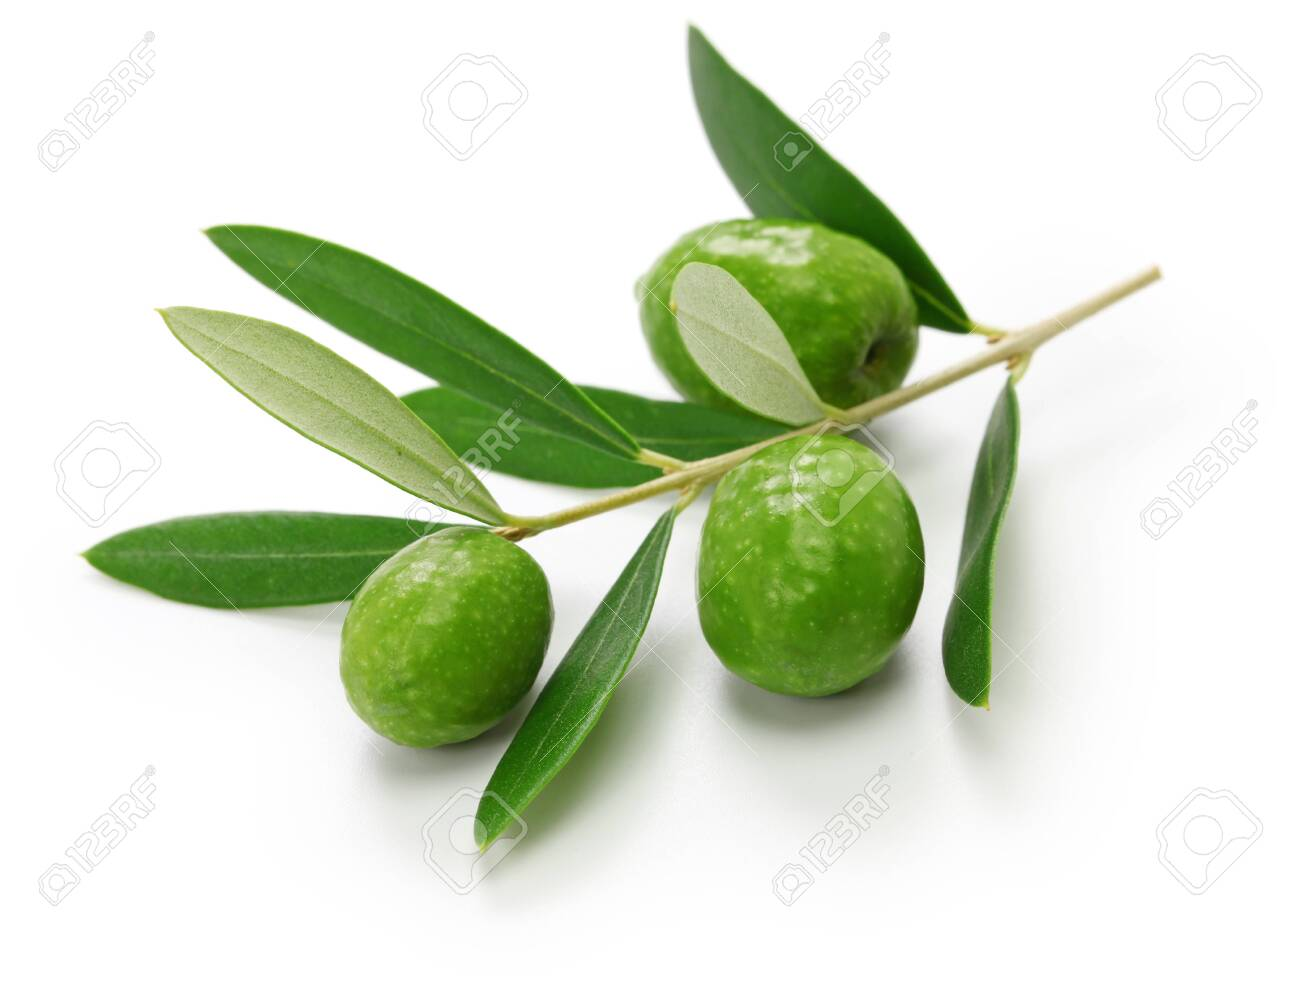 Green olives with leaves isolated on white - 132009766